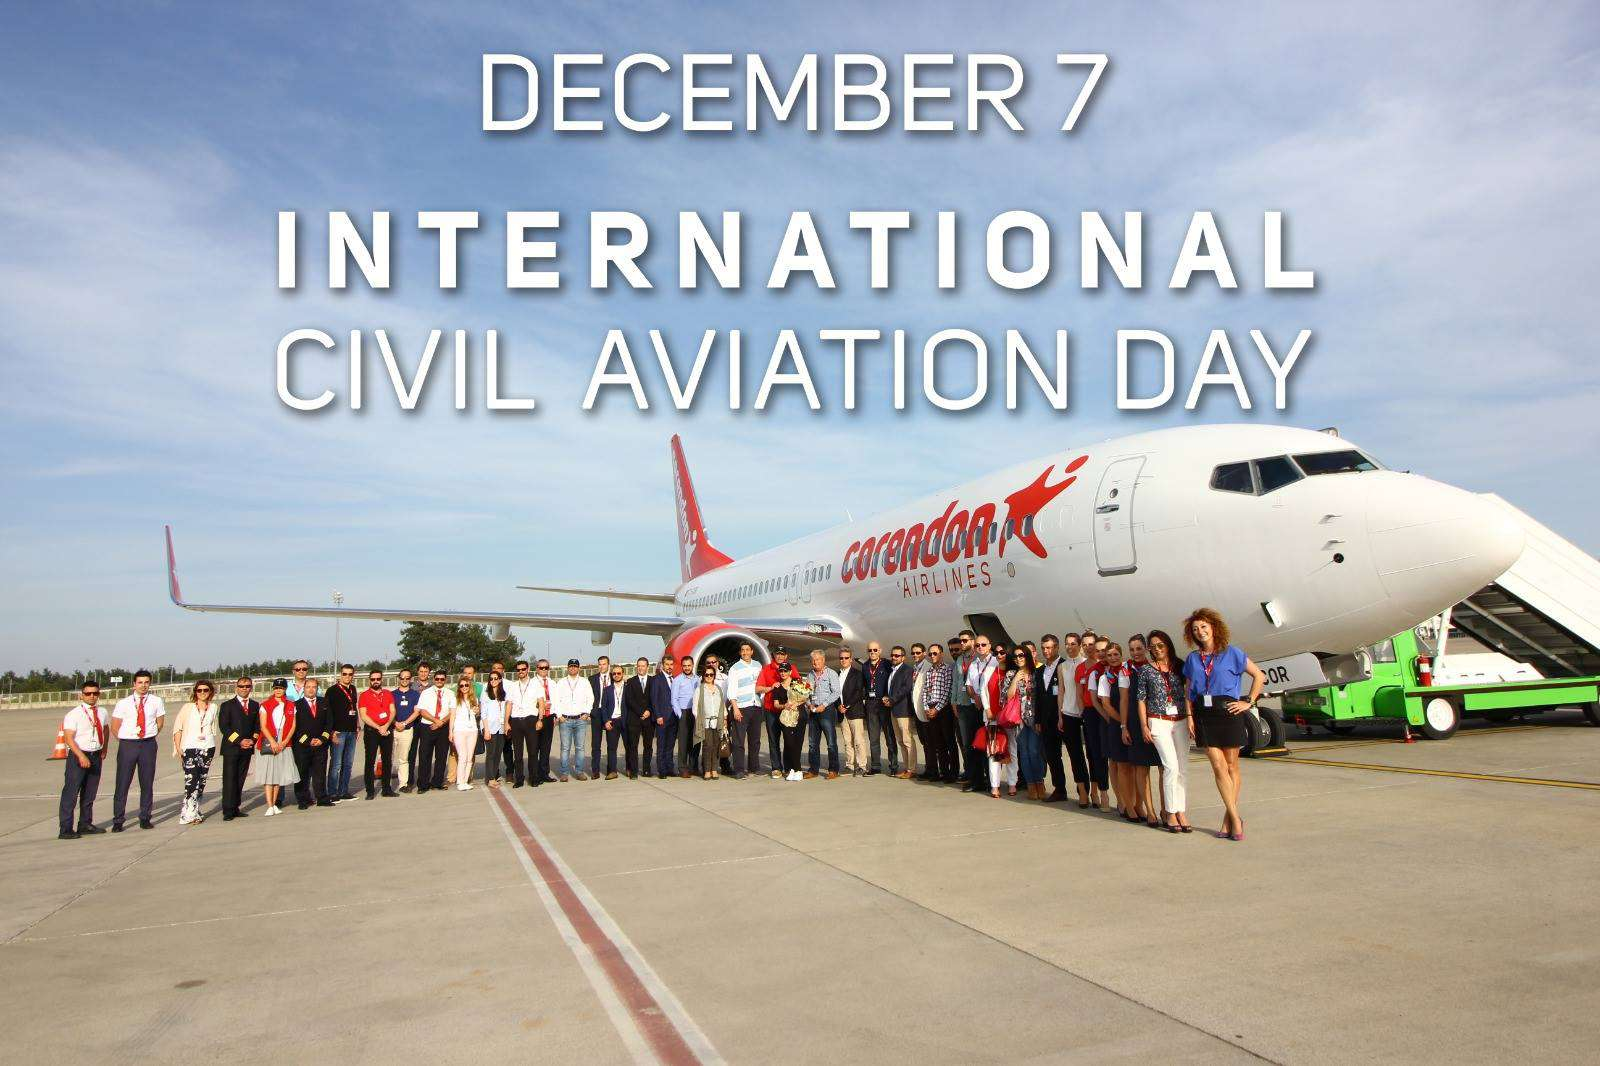 International Civil Aviation Day Wishes